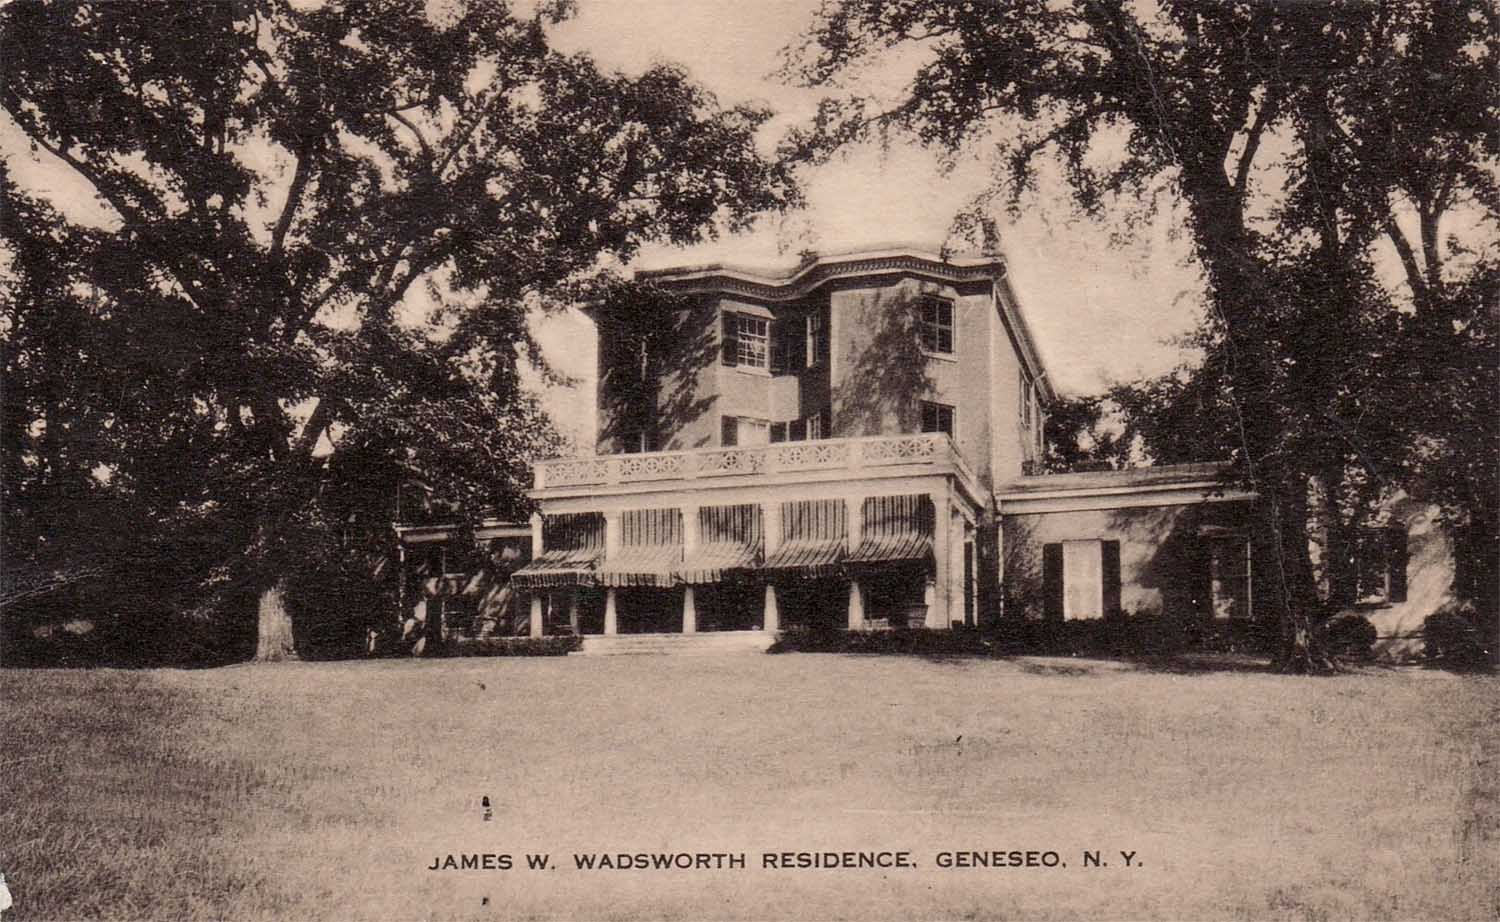 c. 1909 West face of Hartford House Courtesy of Livingston County Historian